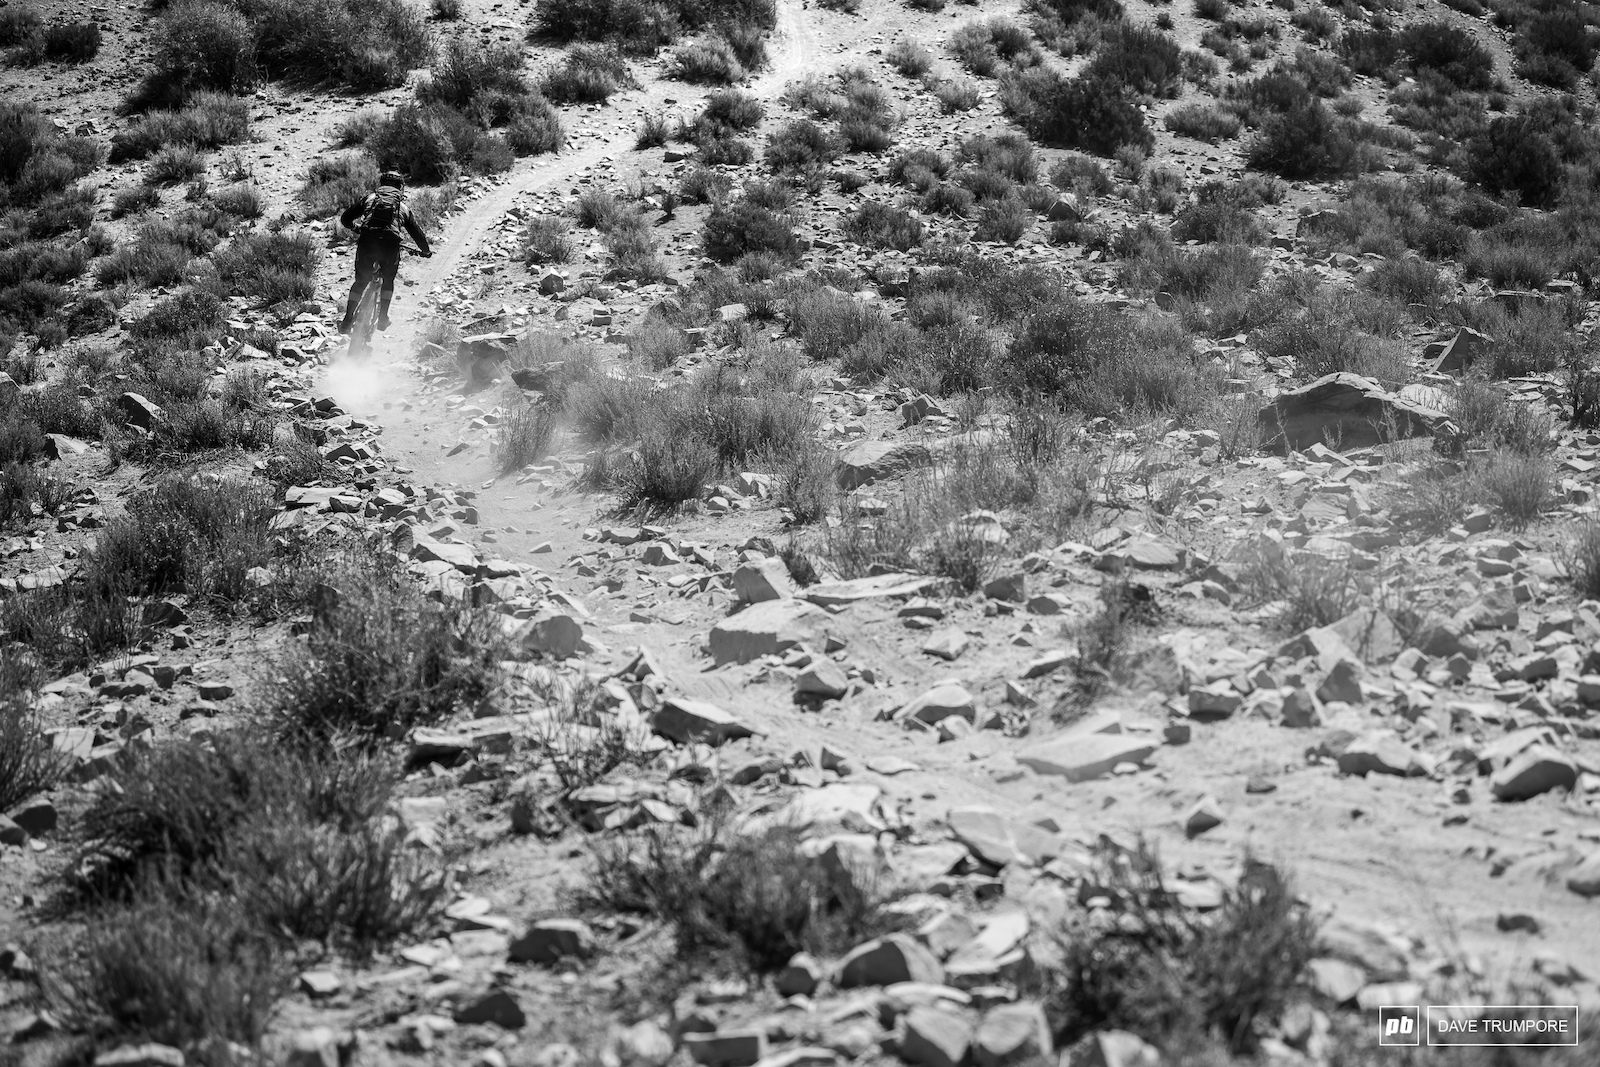 Day 3 s stages were super fast and flowy many of which are normal ridden on dirt bikes.